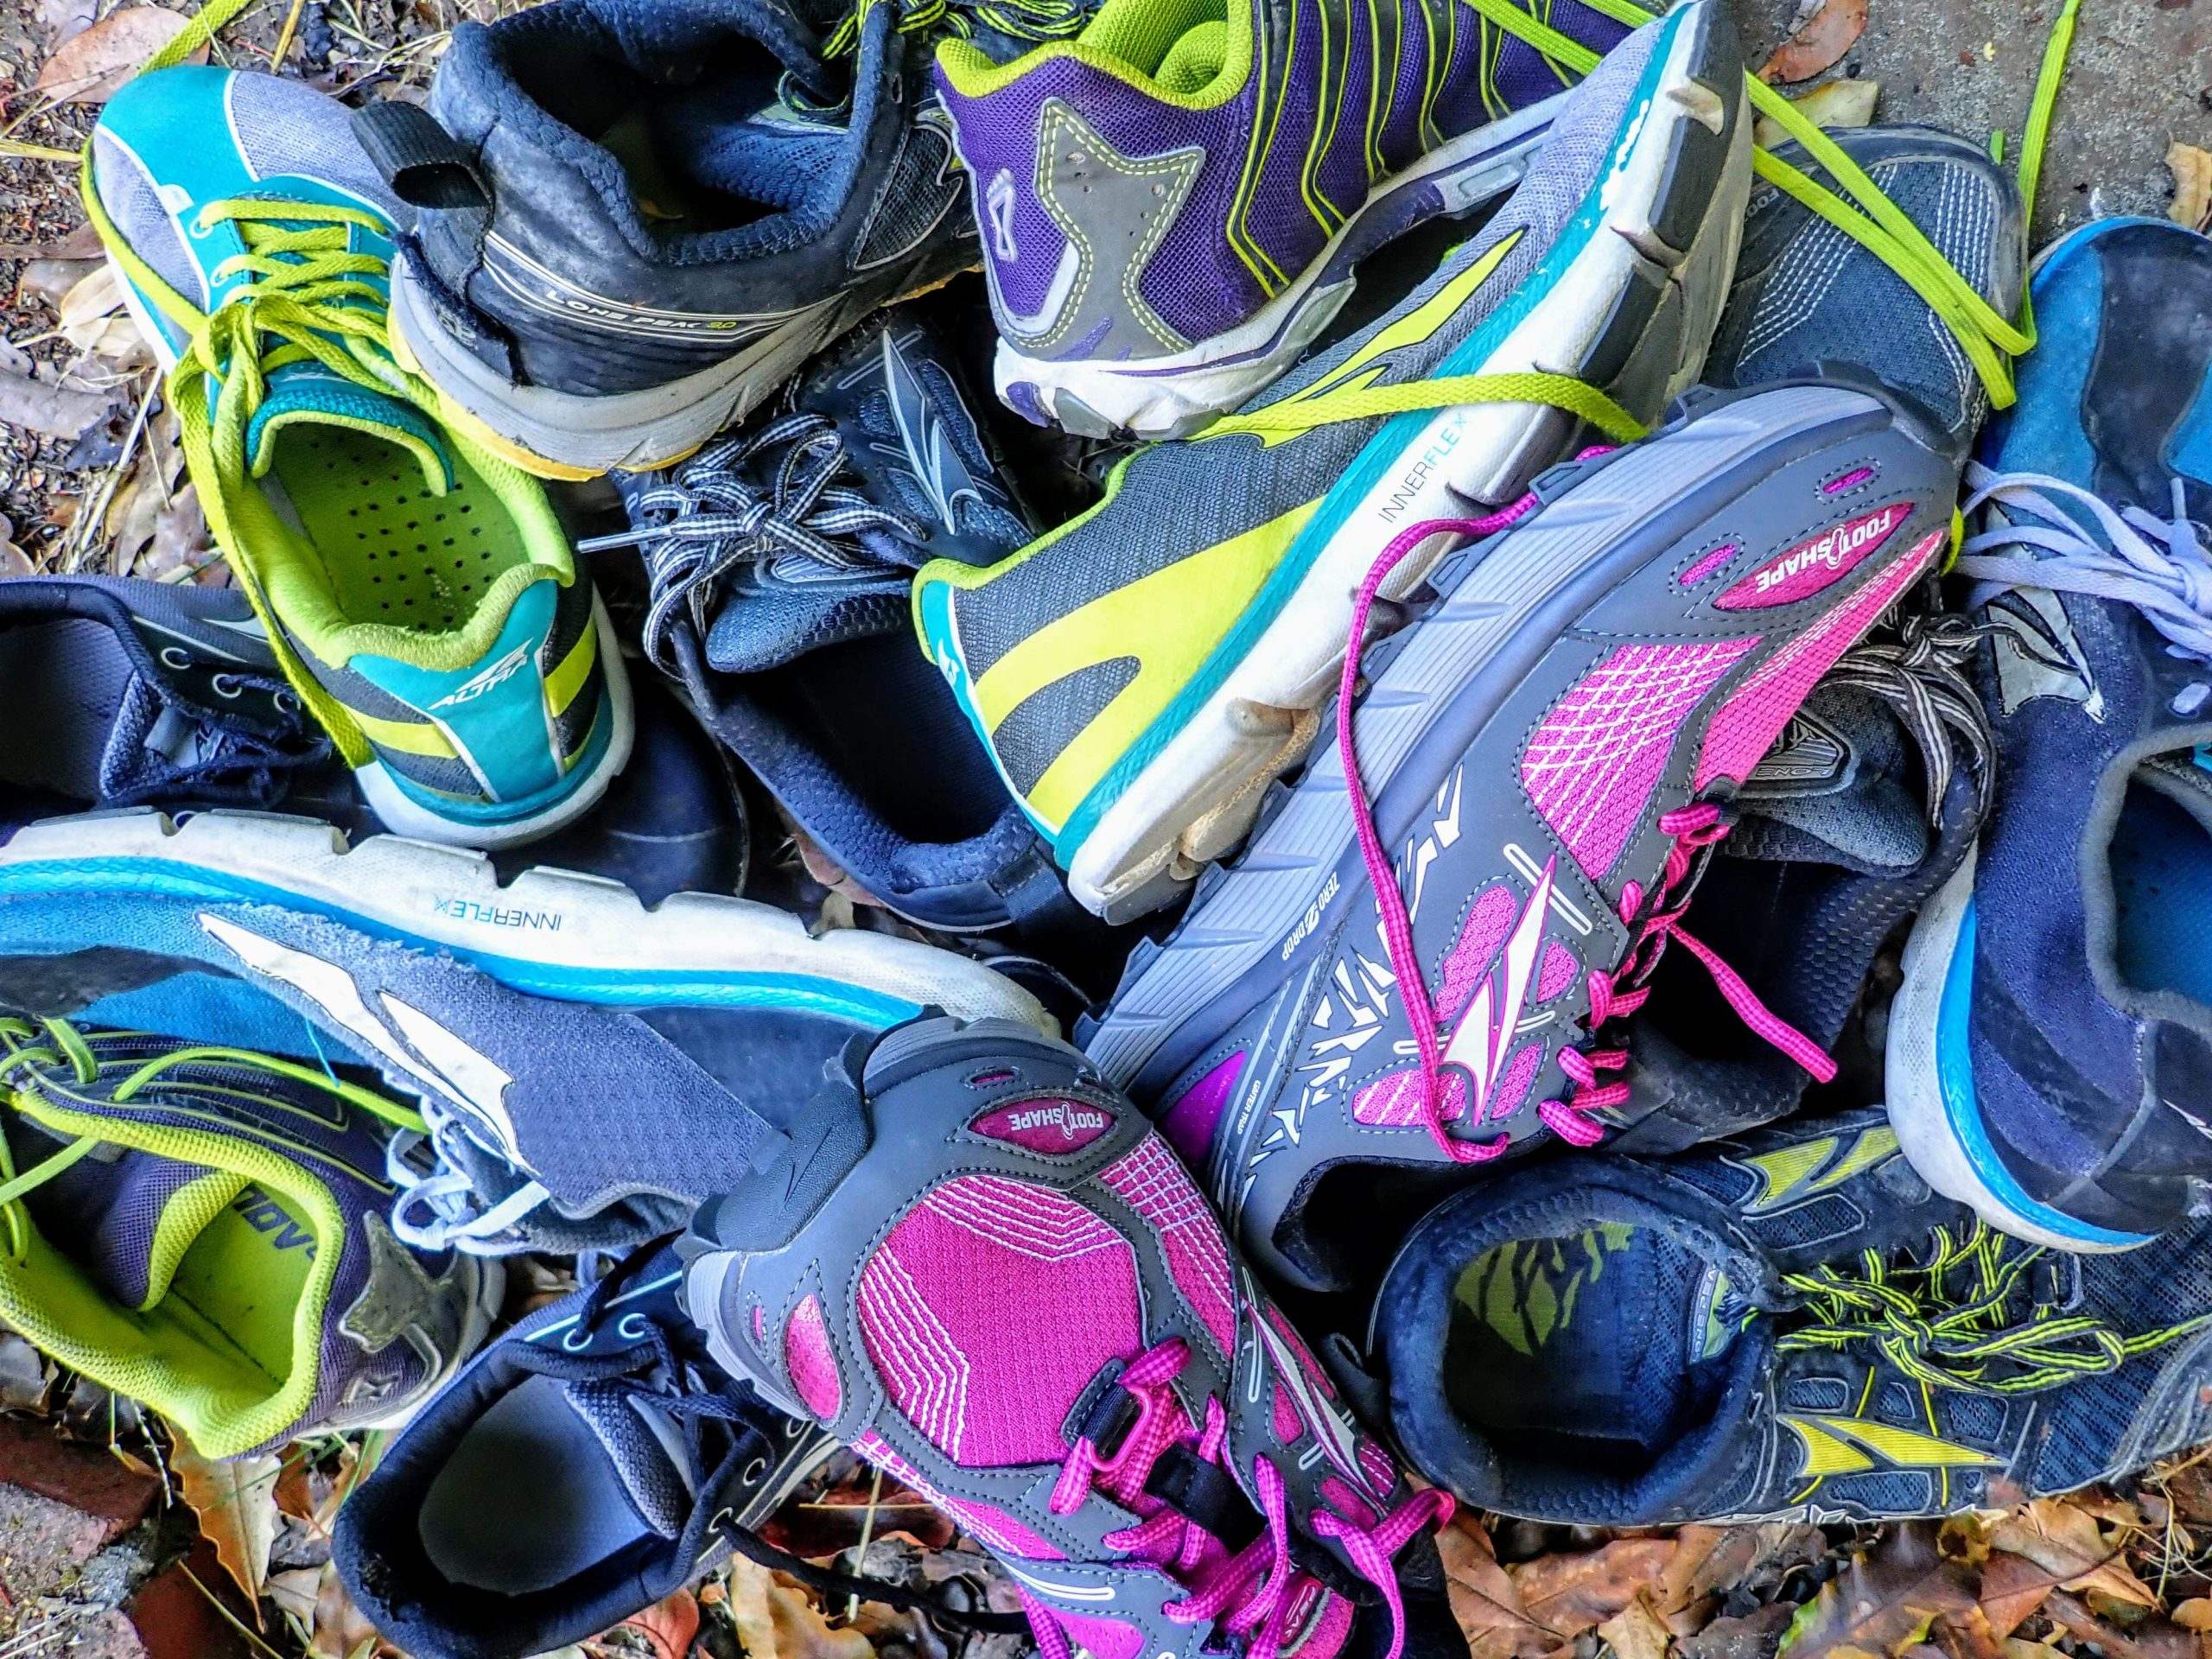 Best Running Shoes For Overpronation 2020.The Best Trail Running Shoes For Hiking In 2019 2020